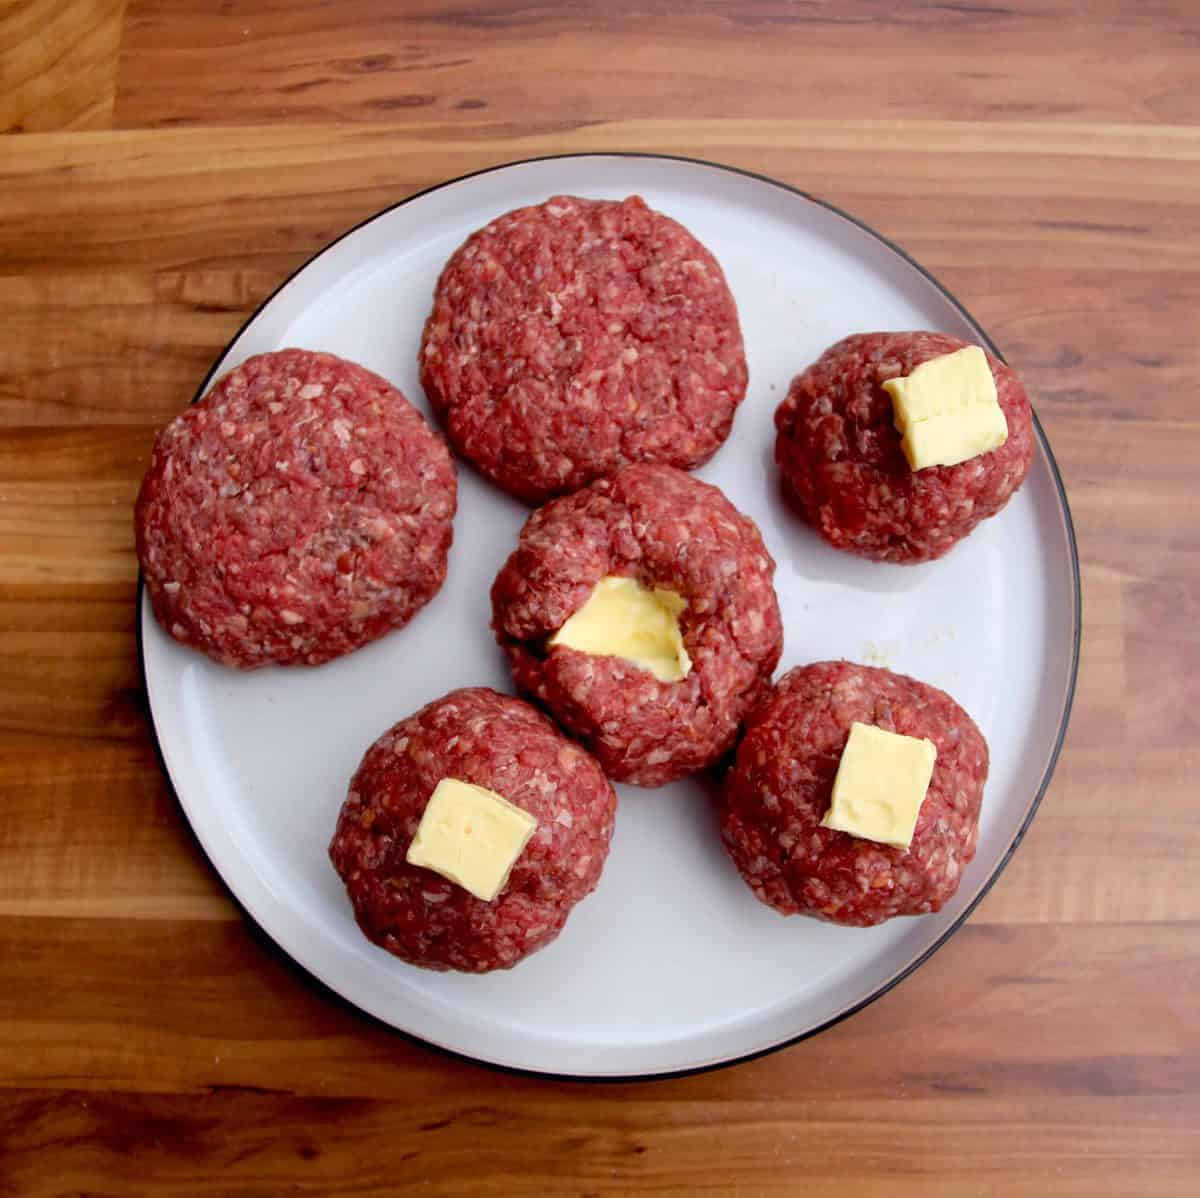 Stuffing the burgers with butter